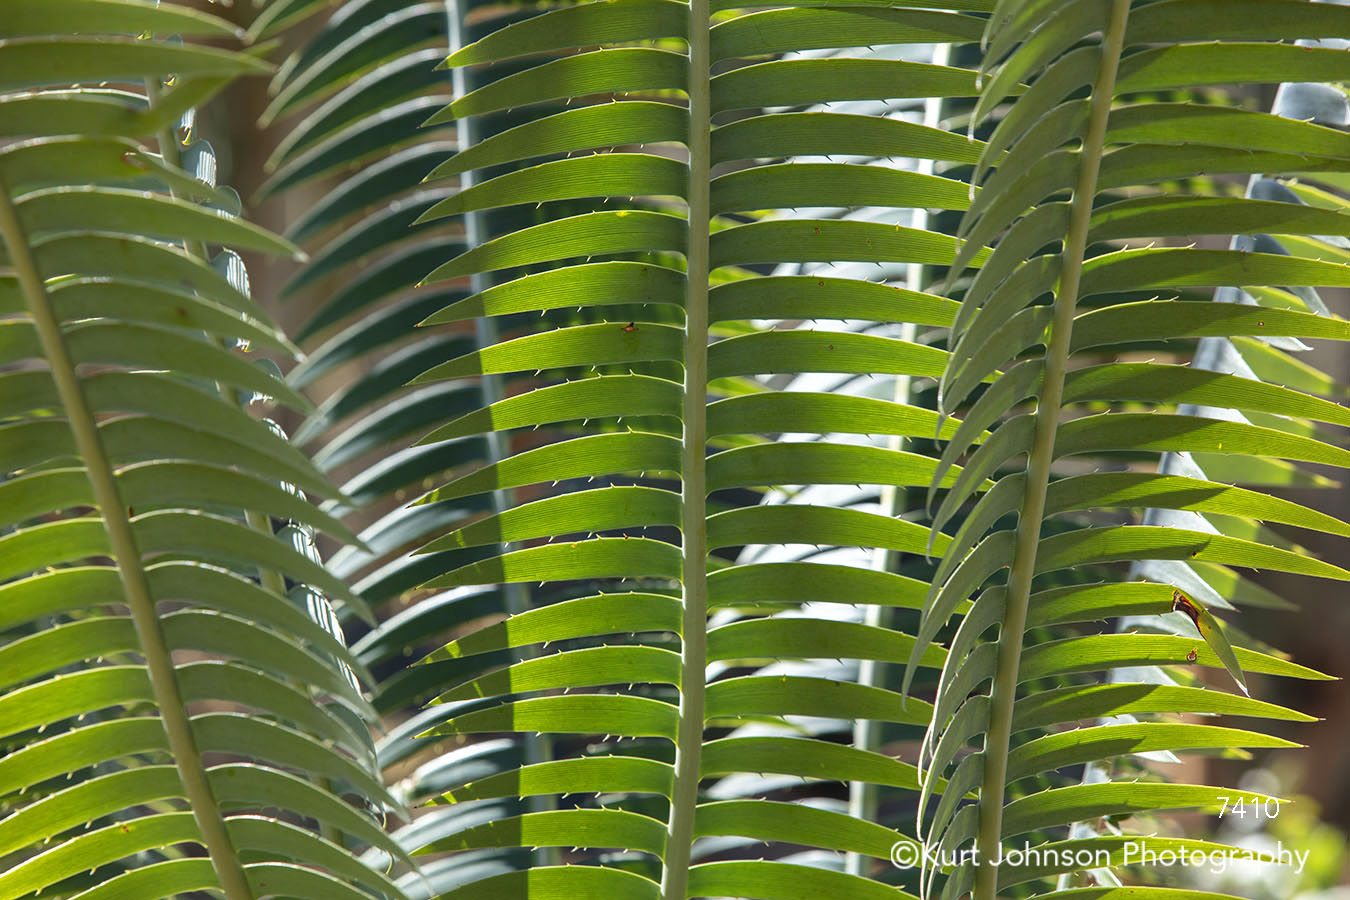 green fern leaves lines pattern texture close up detail